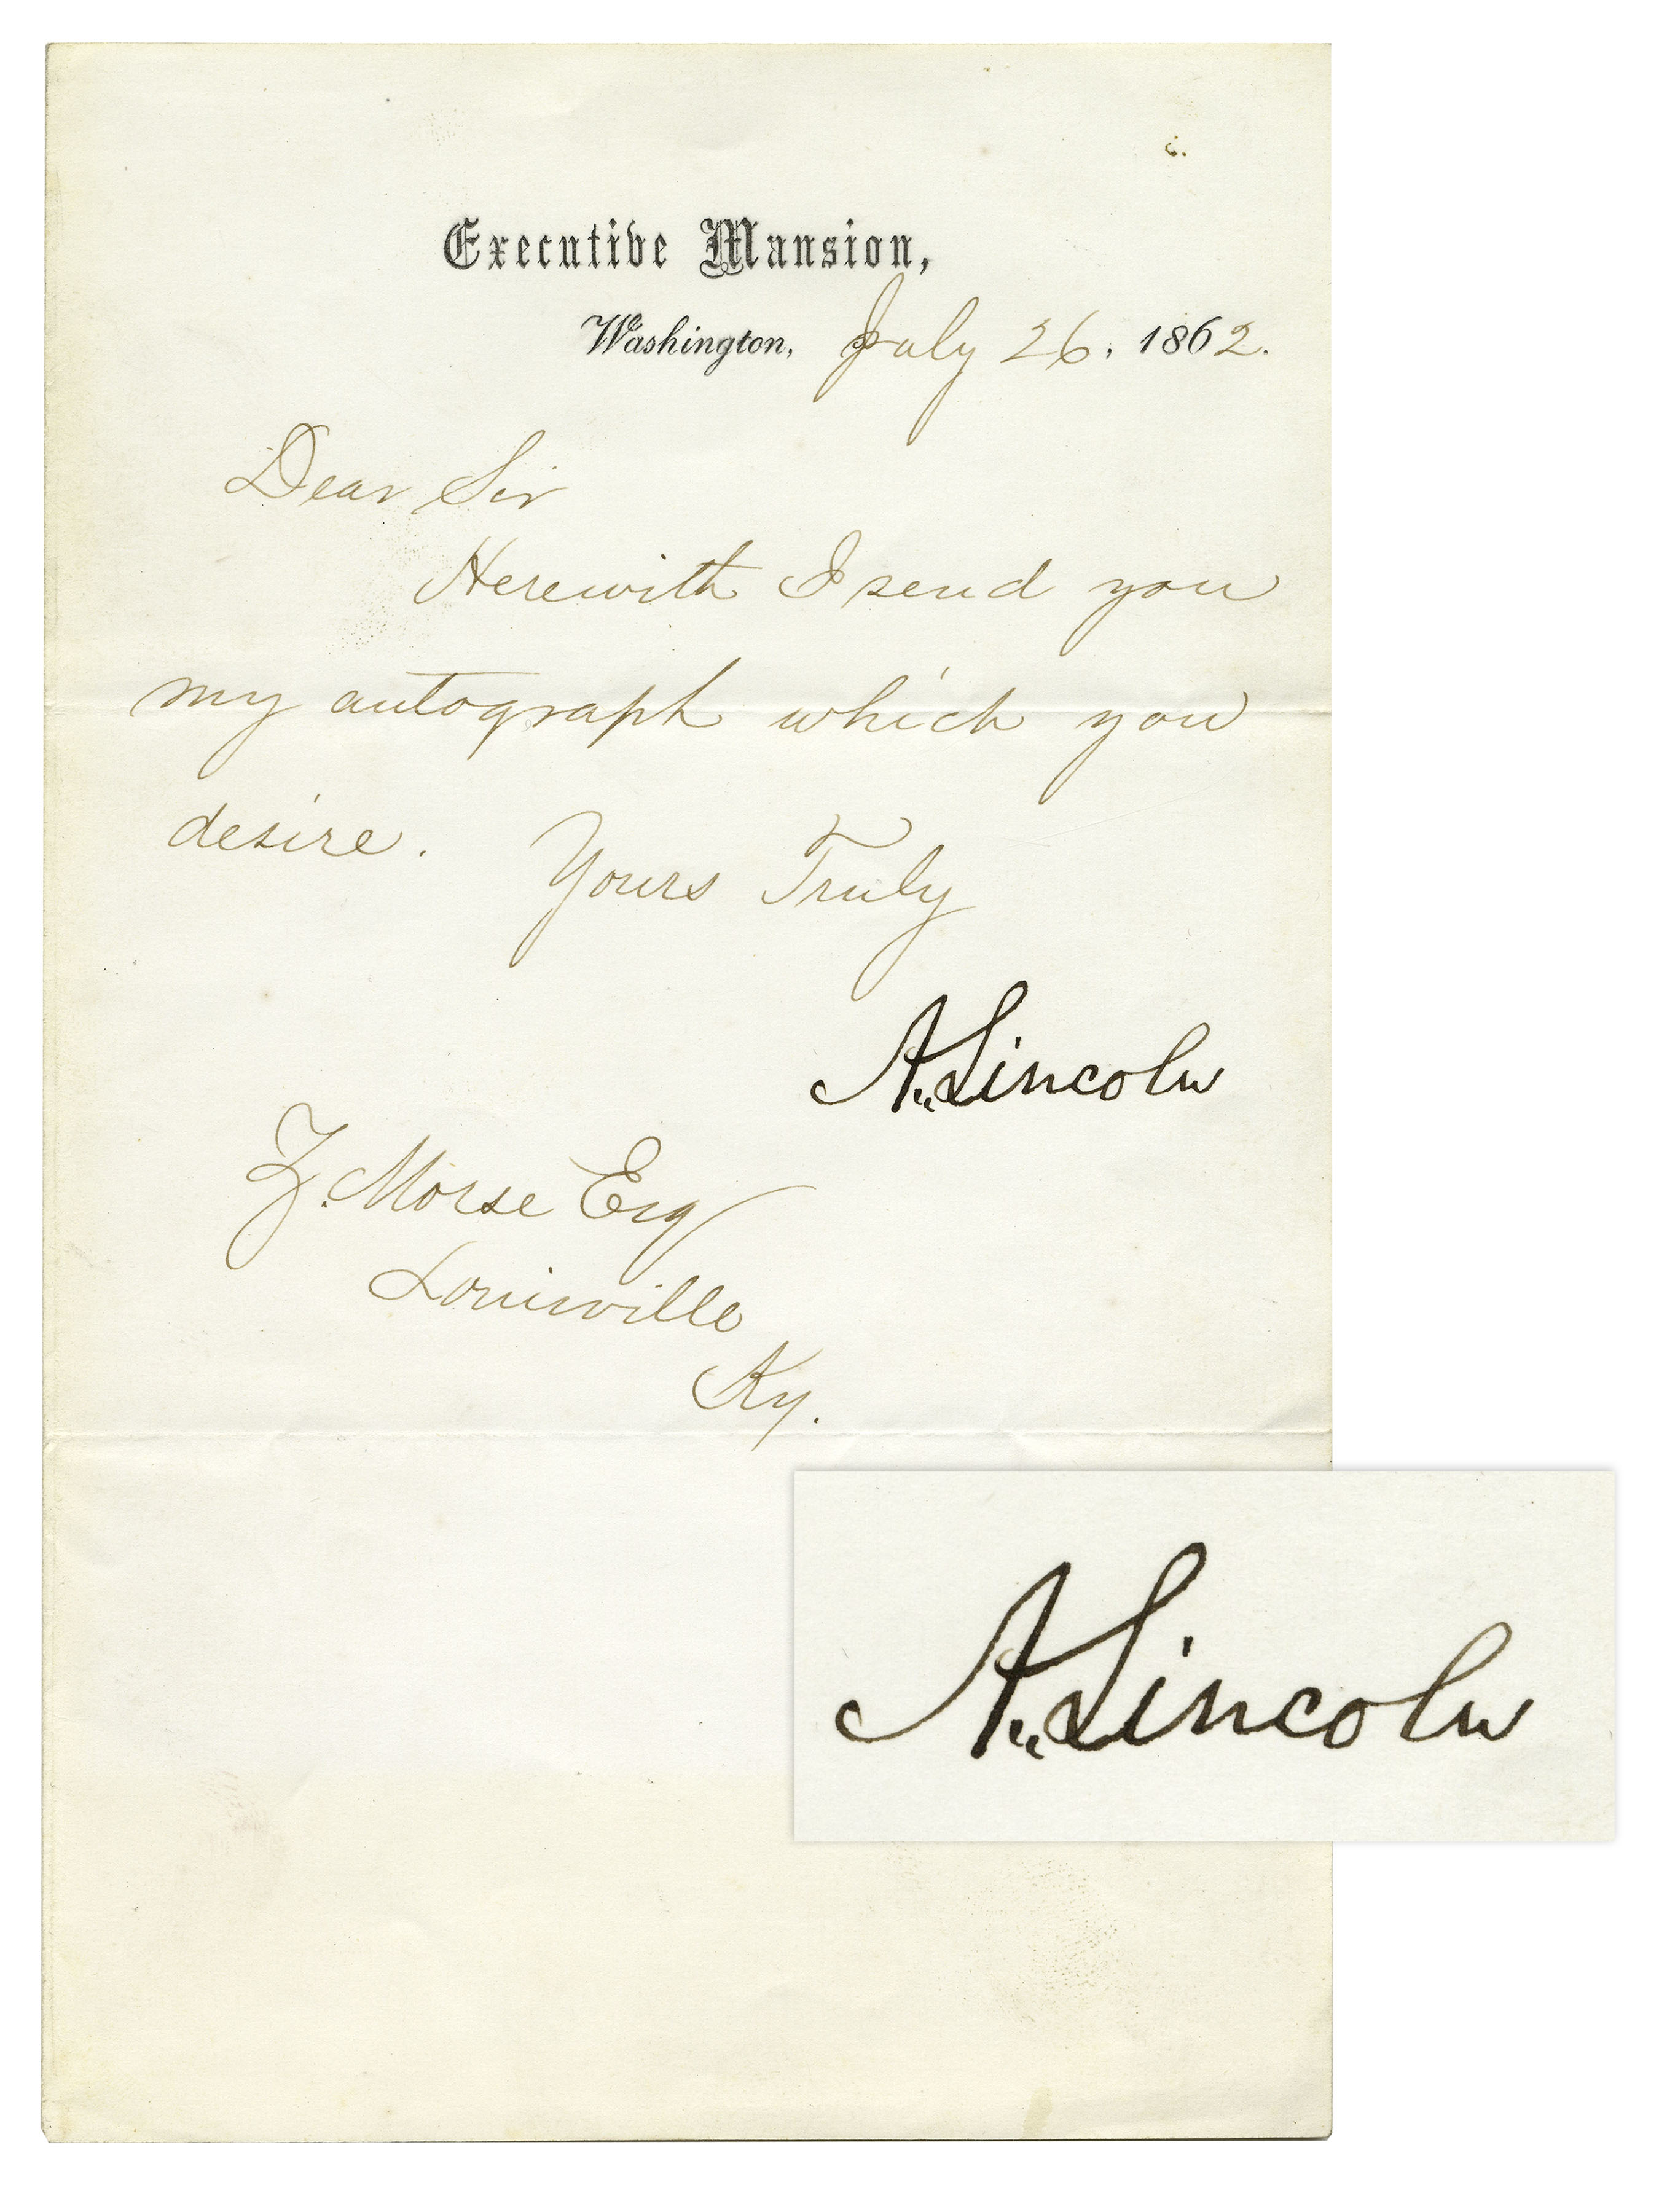 abraham lincoln letter signed as president written on executive mansion stationery